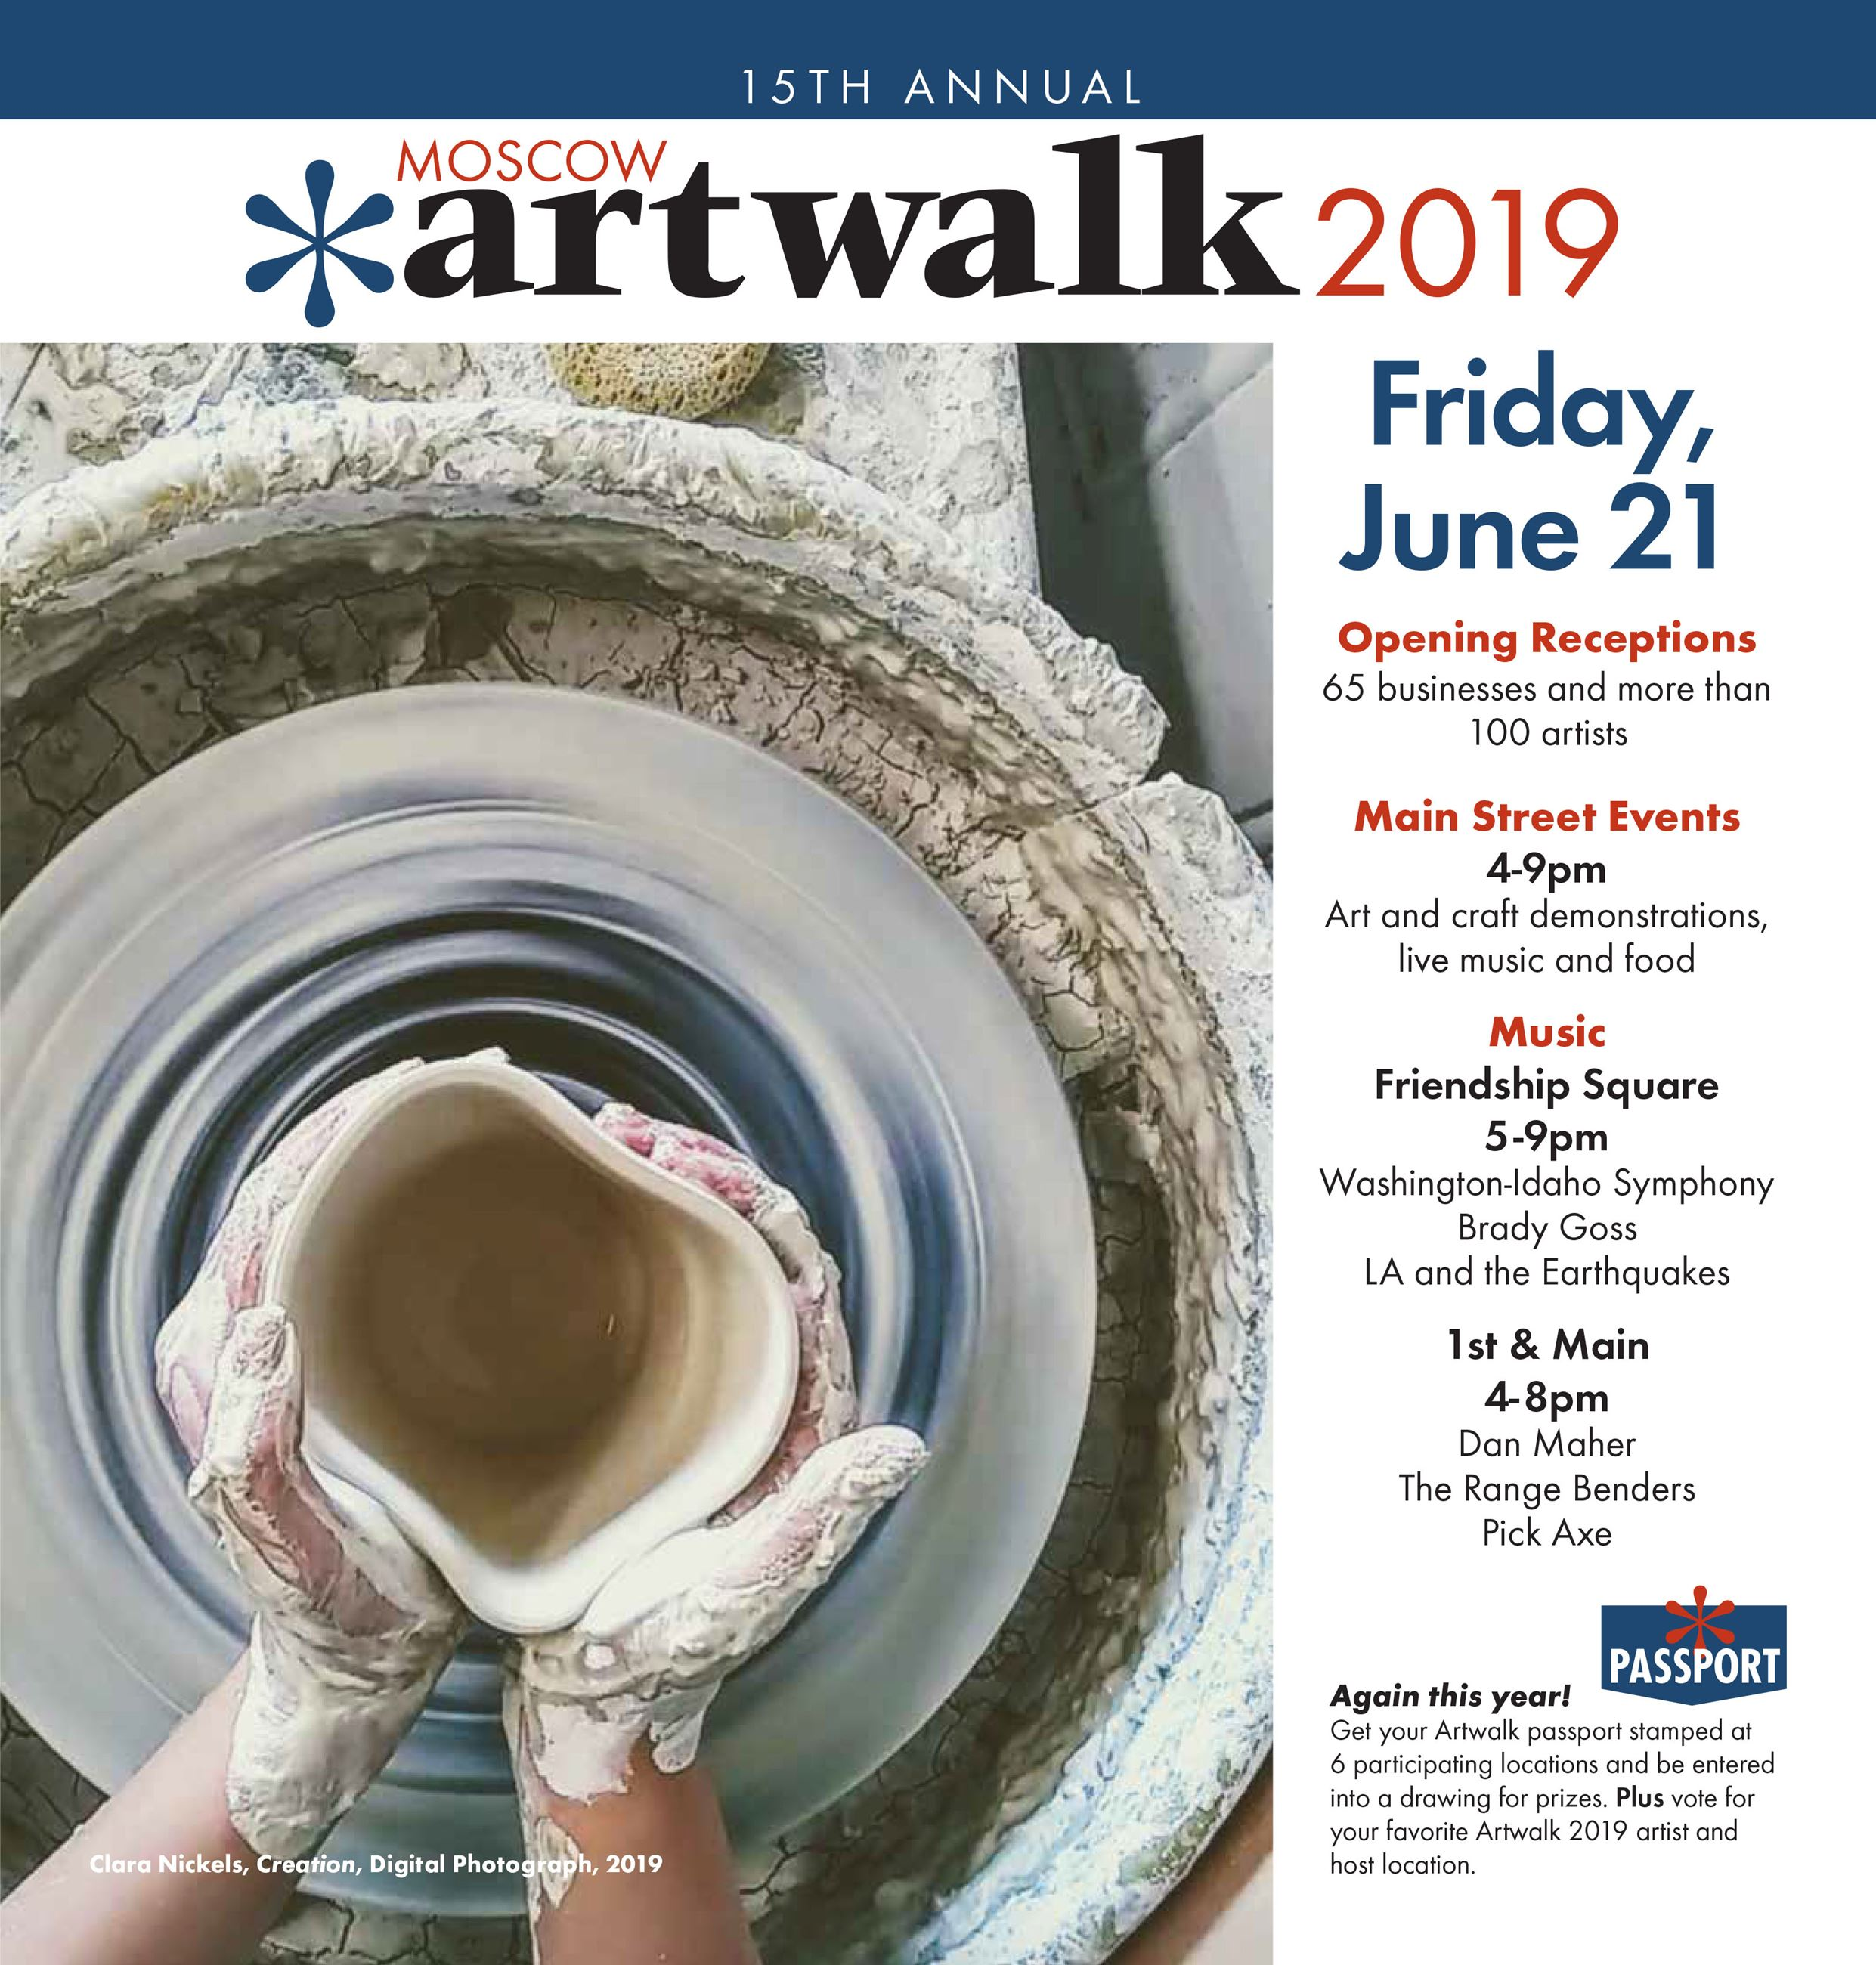 Image of the Artwalk 2019 Brochure Cover